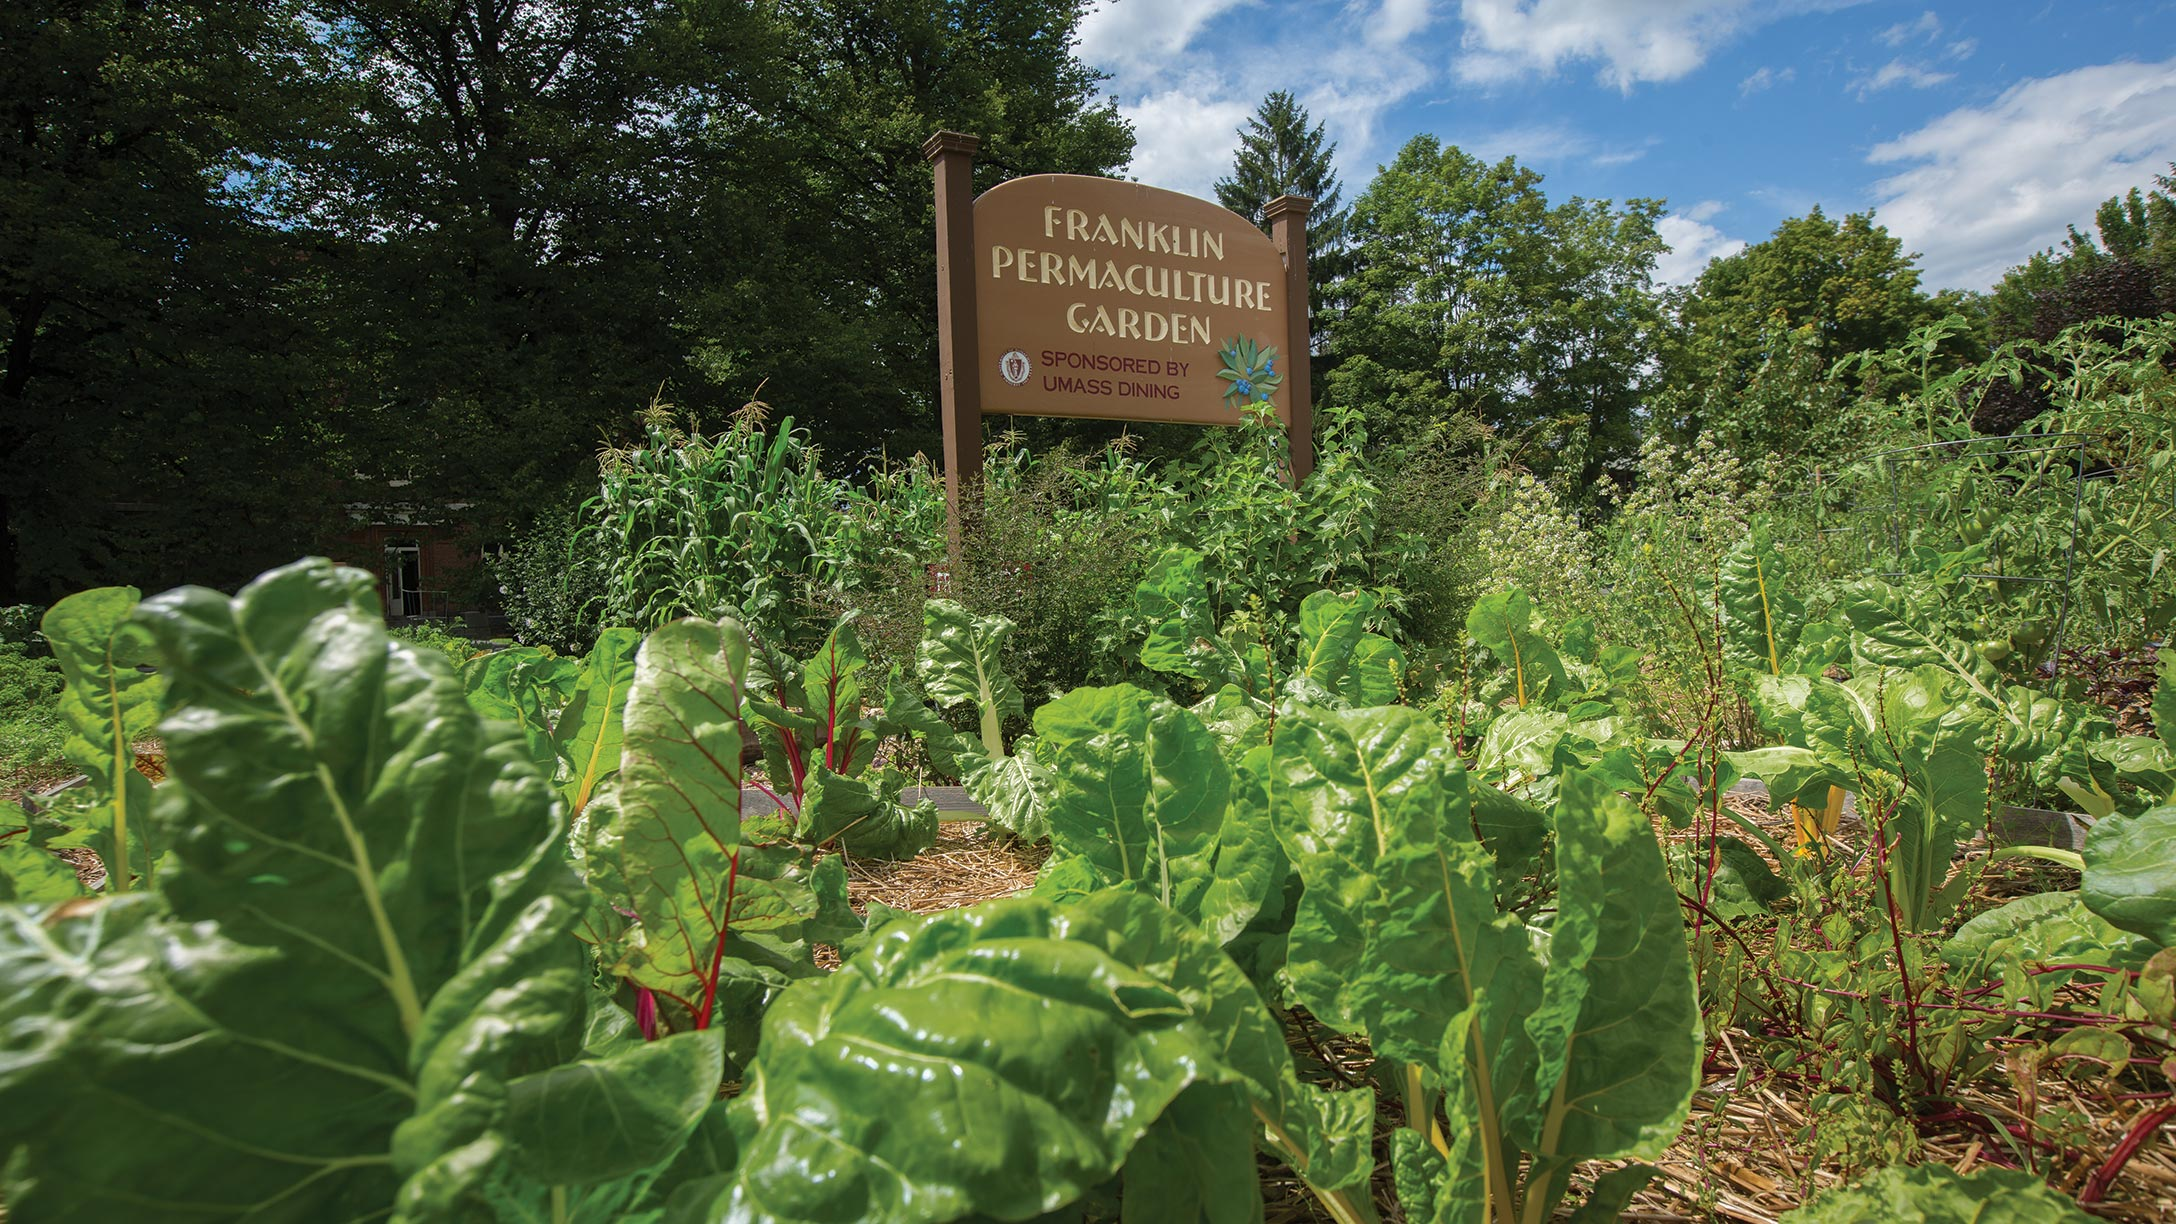 Swiss chard, corn, and other crops grow around the Franklin Permaculture Garden sign